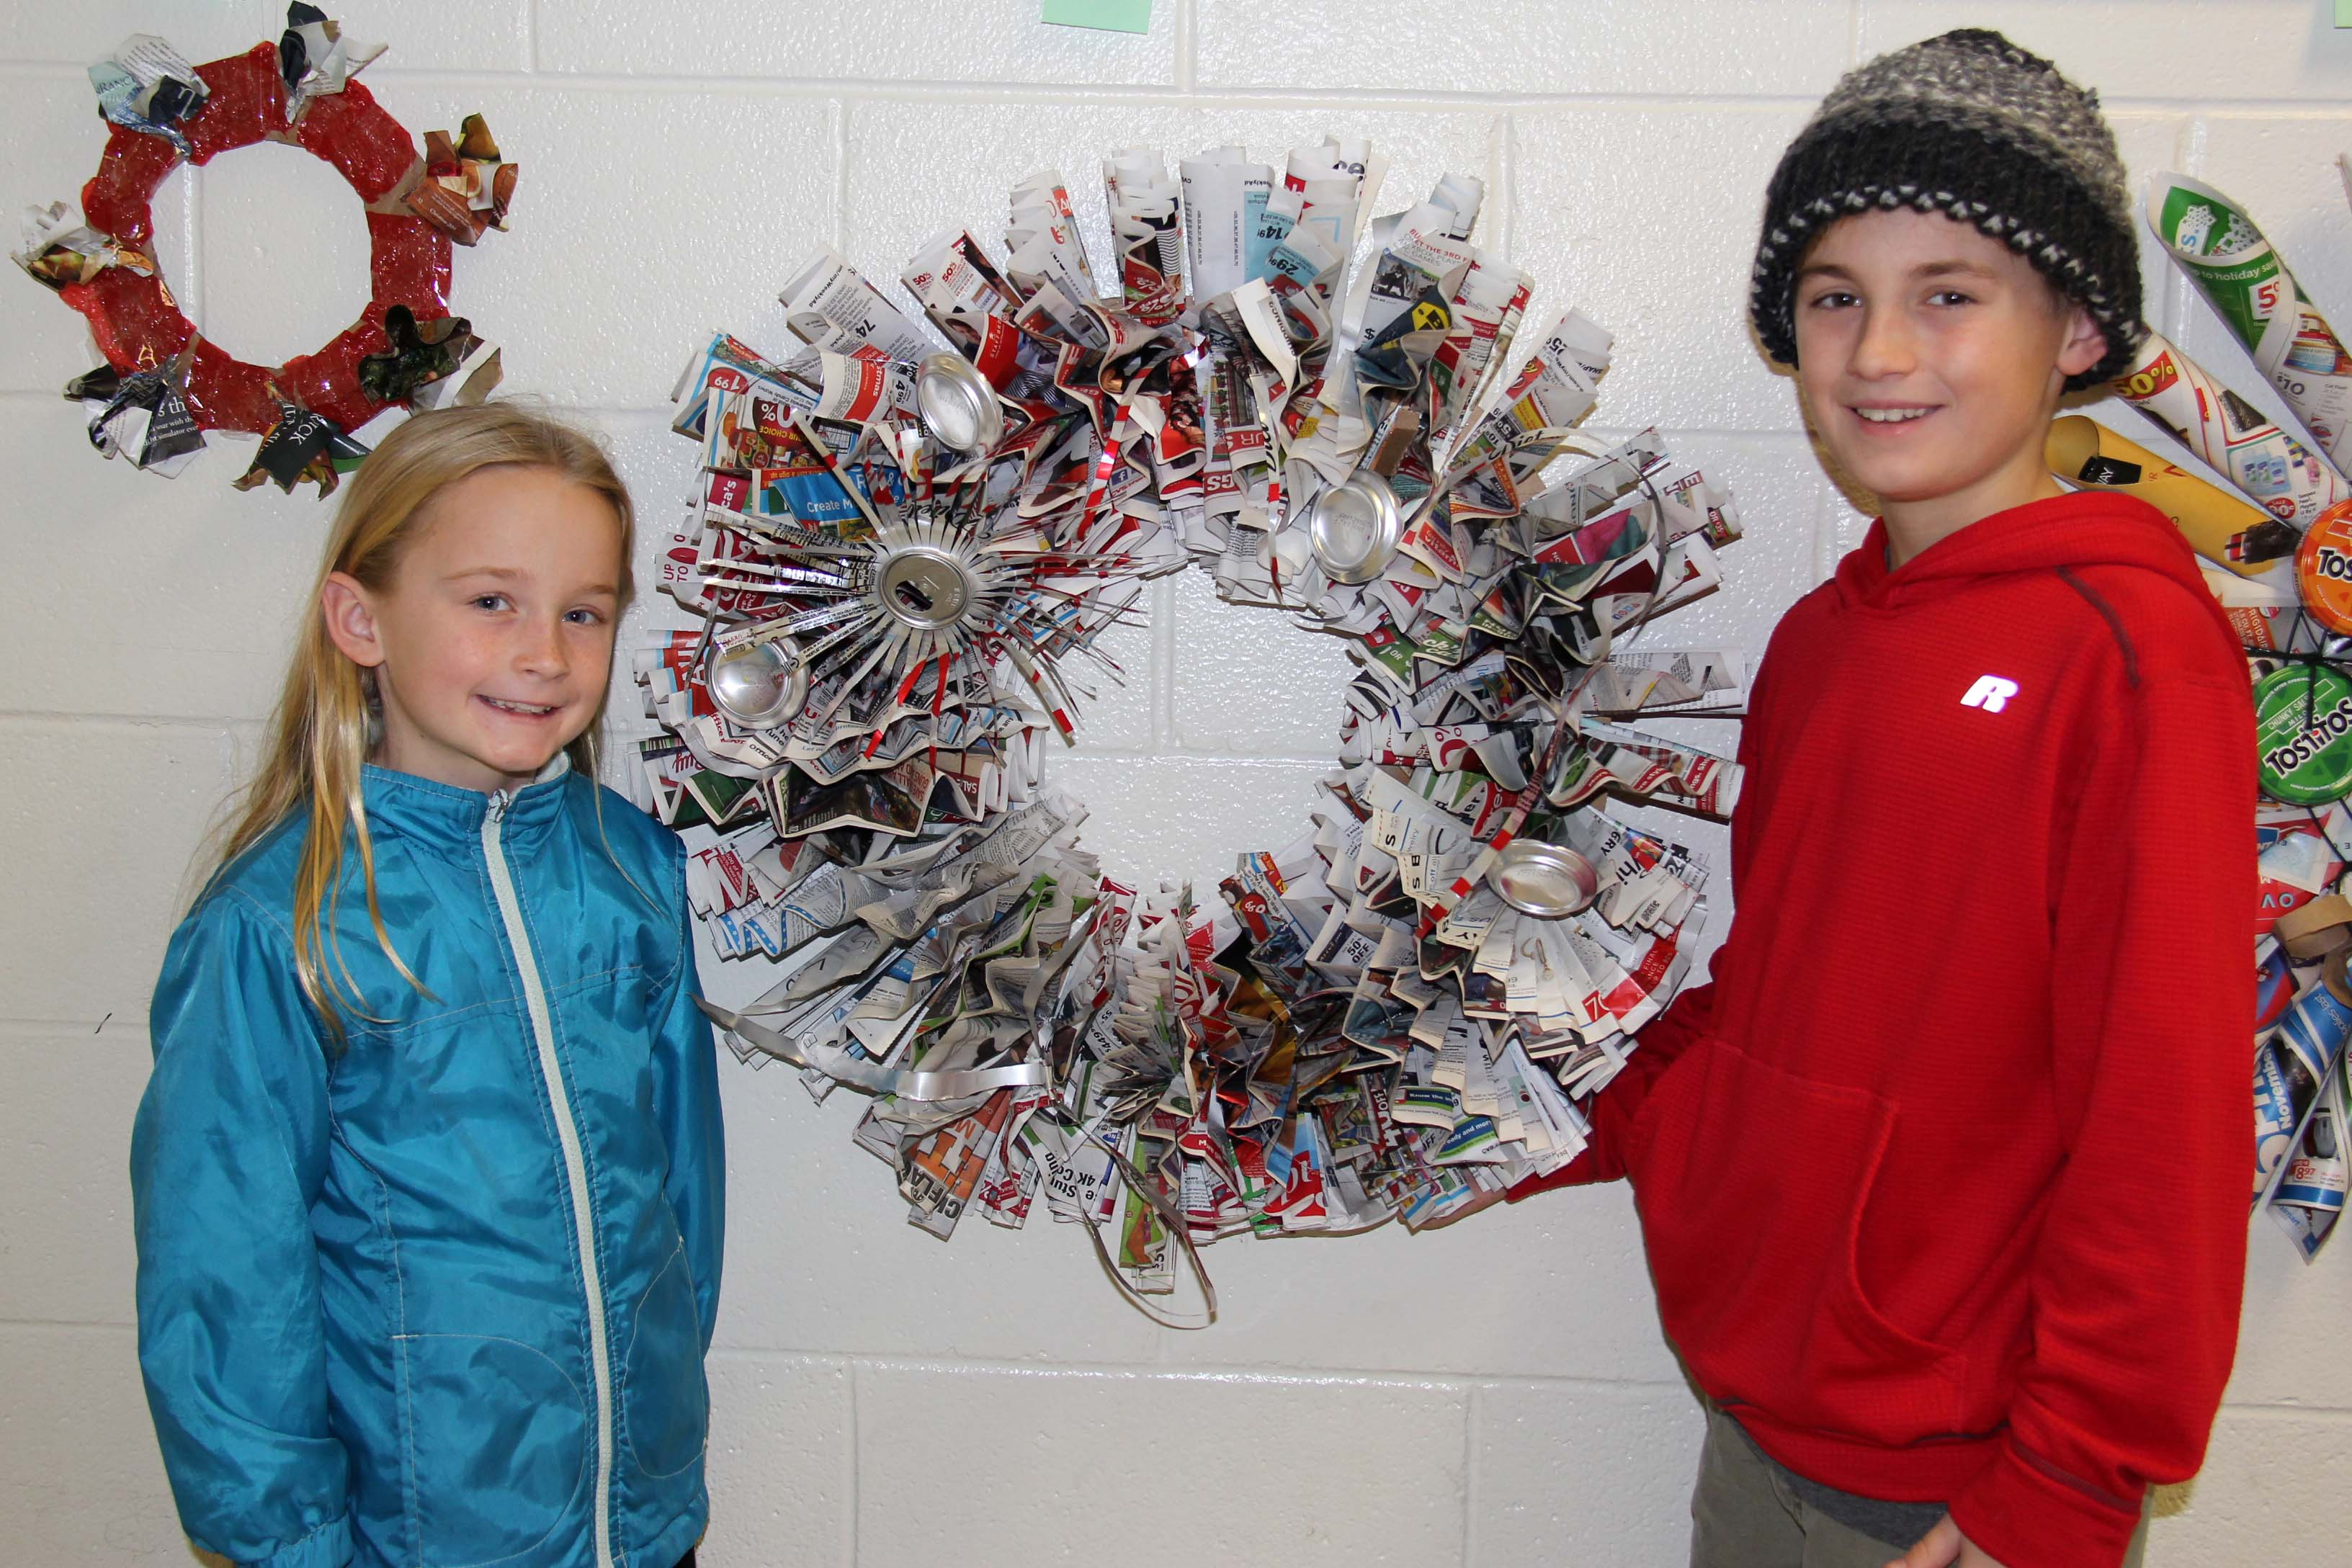 The Razzle Dazzle Recycling Wreath made by the Roche Family won first place in the People's Choice category. A Diet Coke can was transformed into a star to adorn the newspaper wreath.